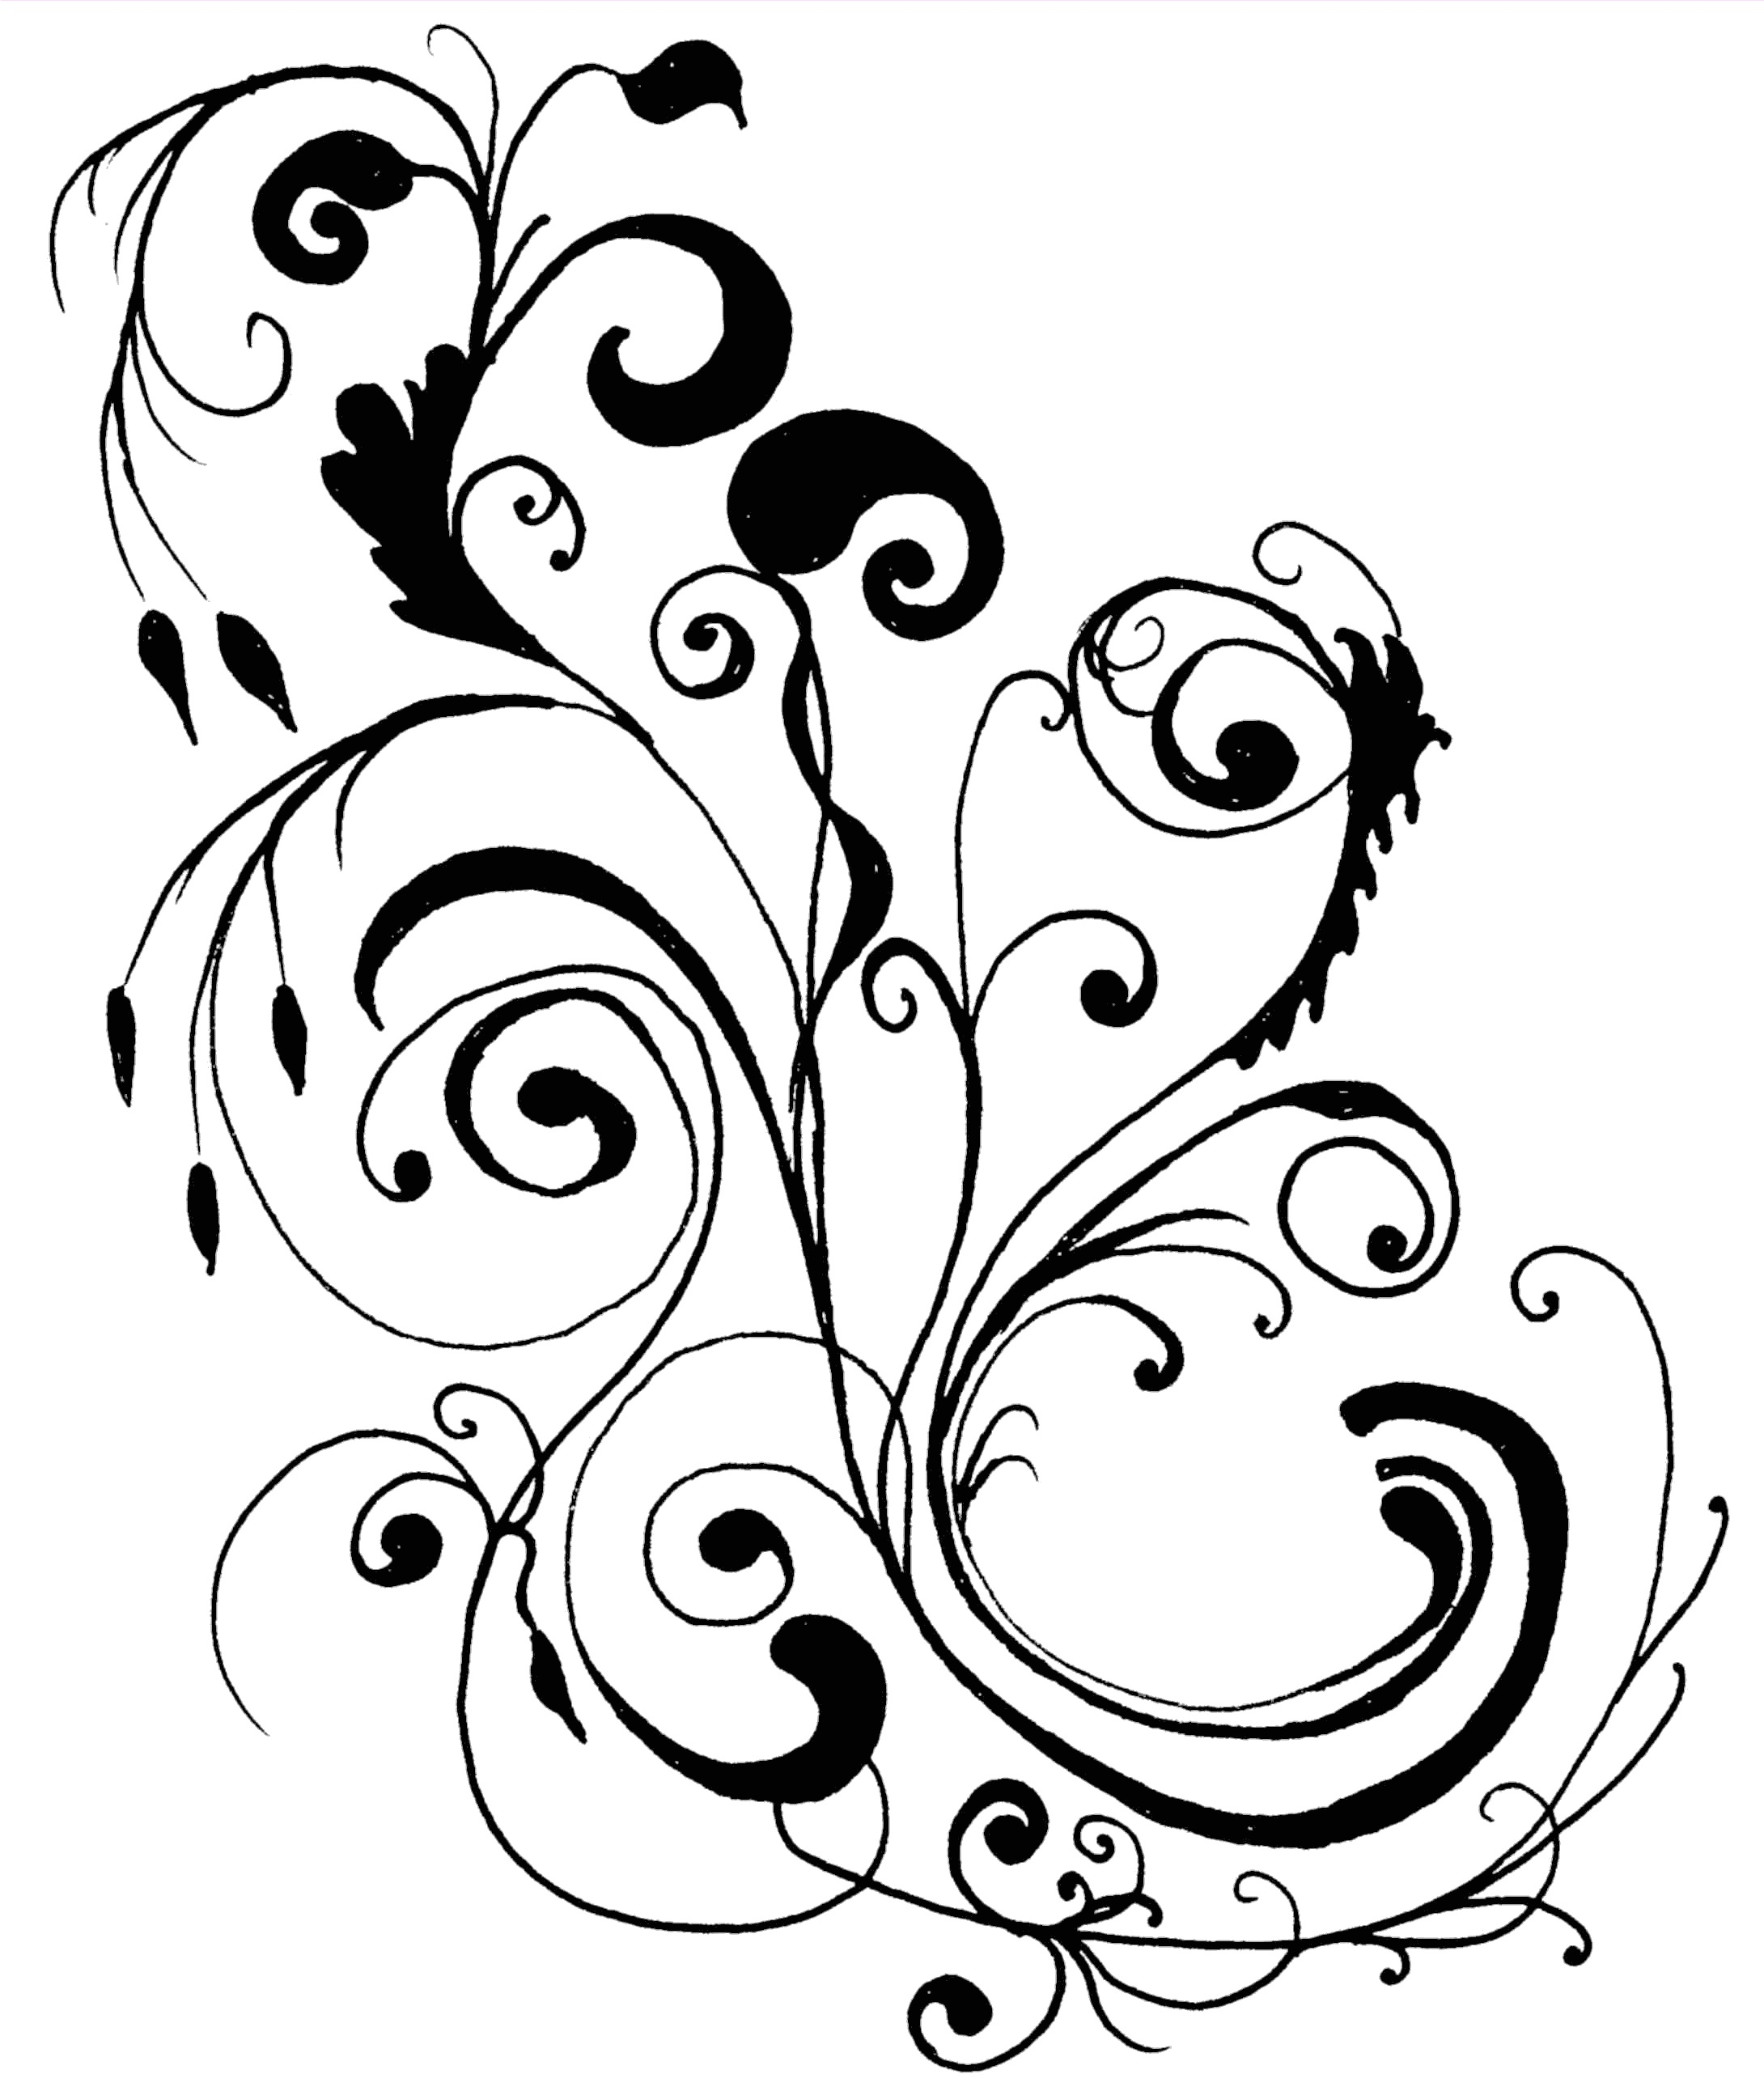 Line Drawing Flower Borders : Flower clipart panda free images